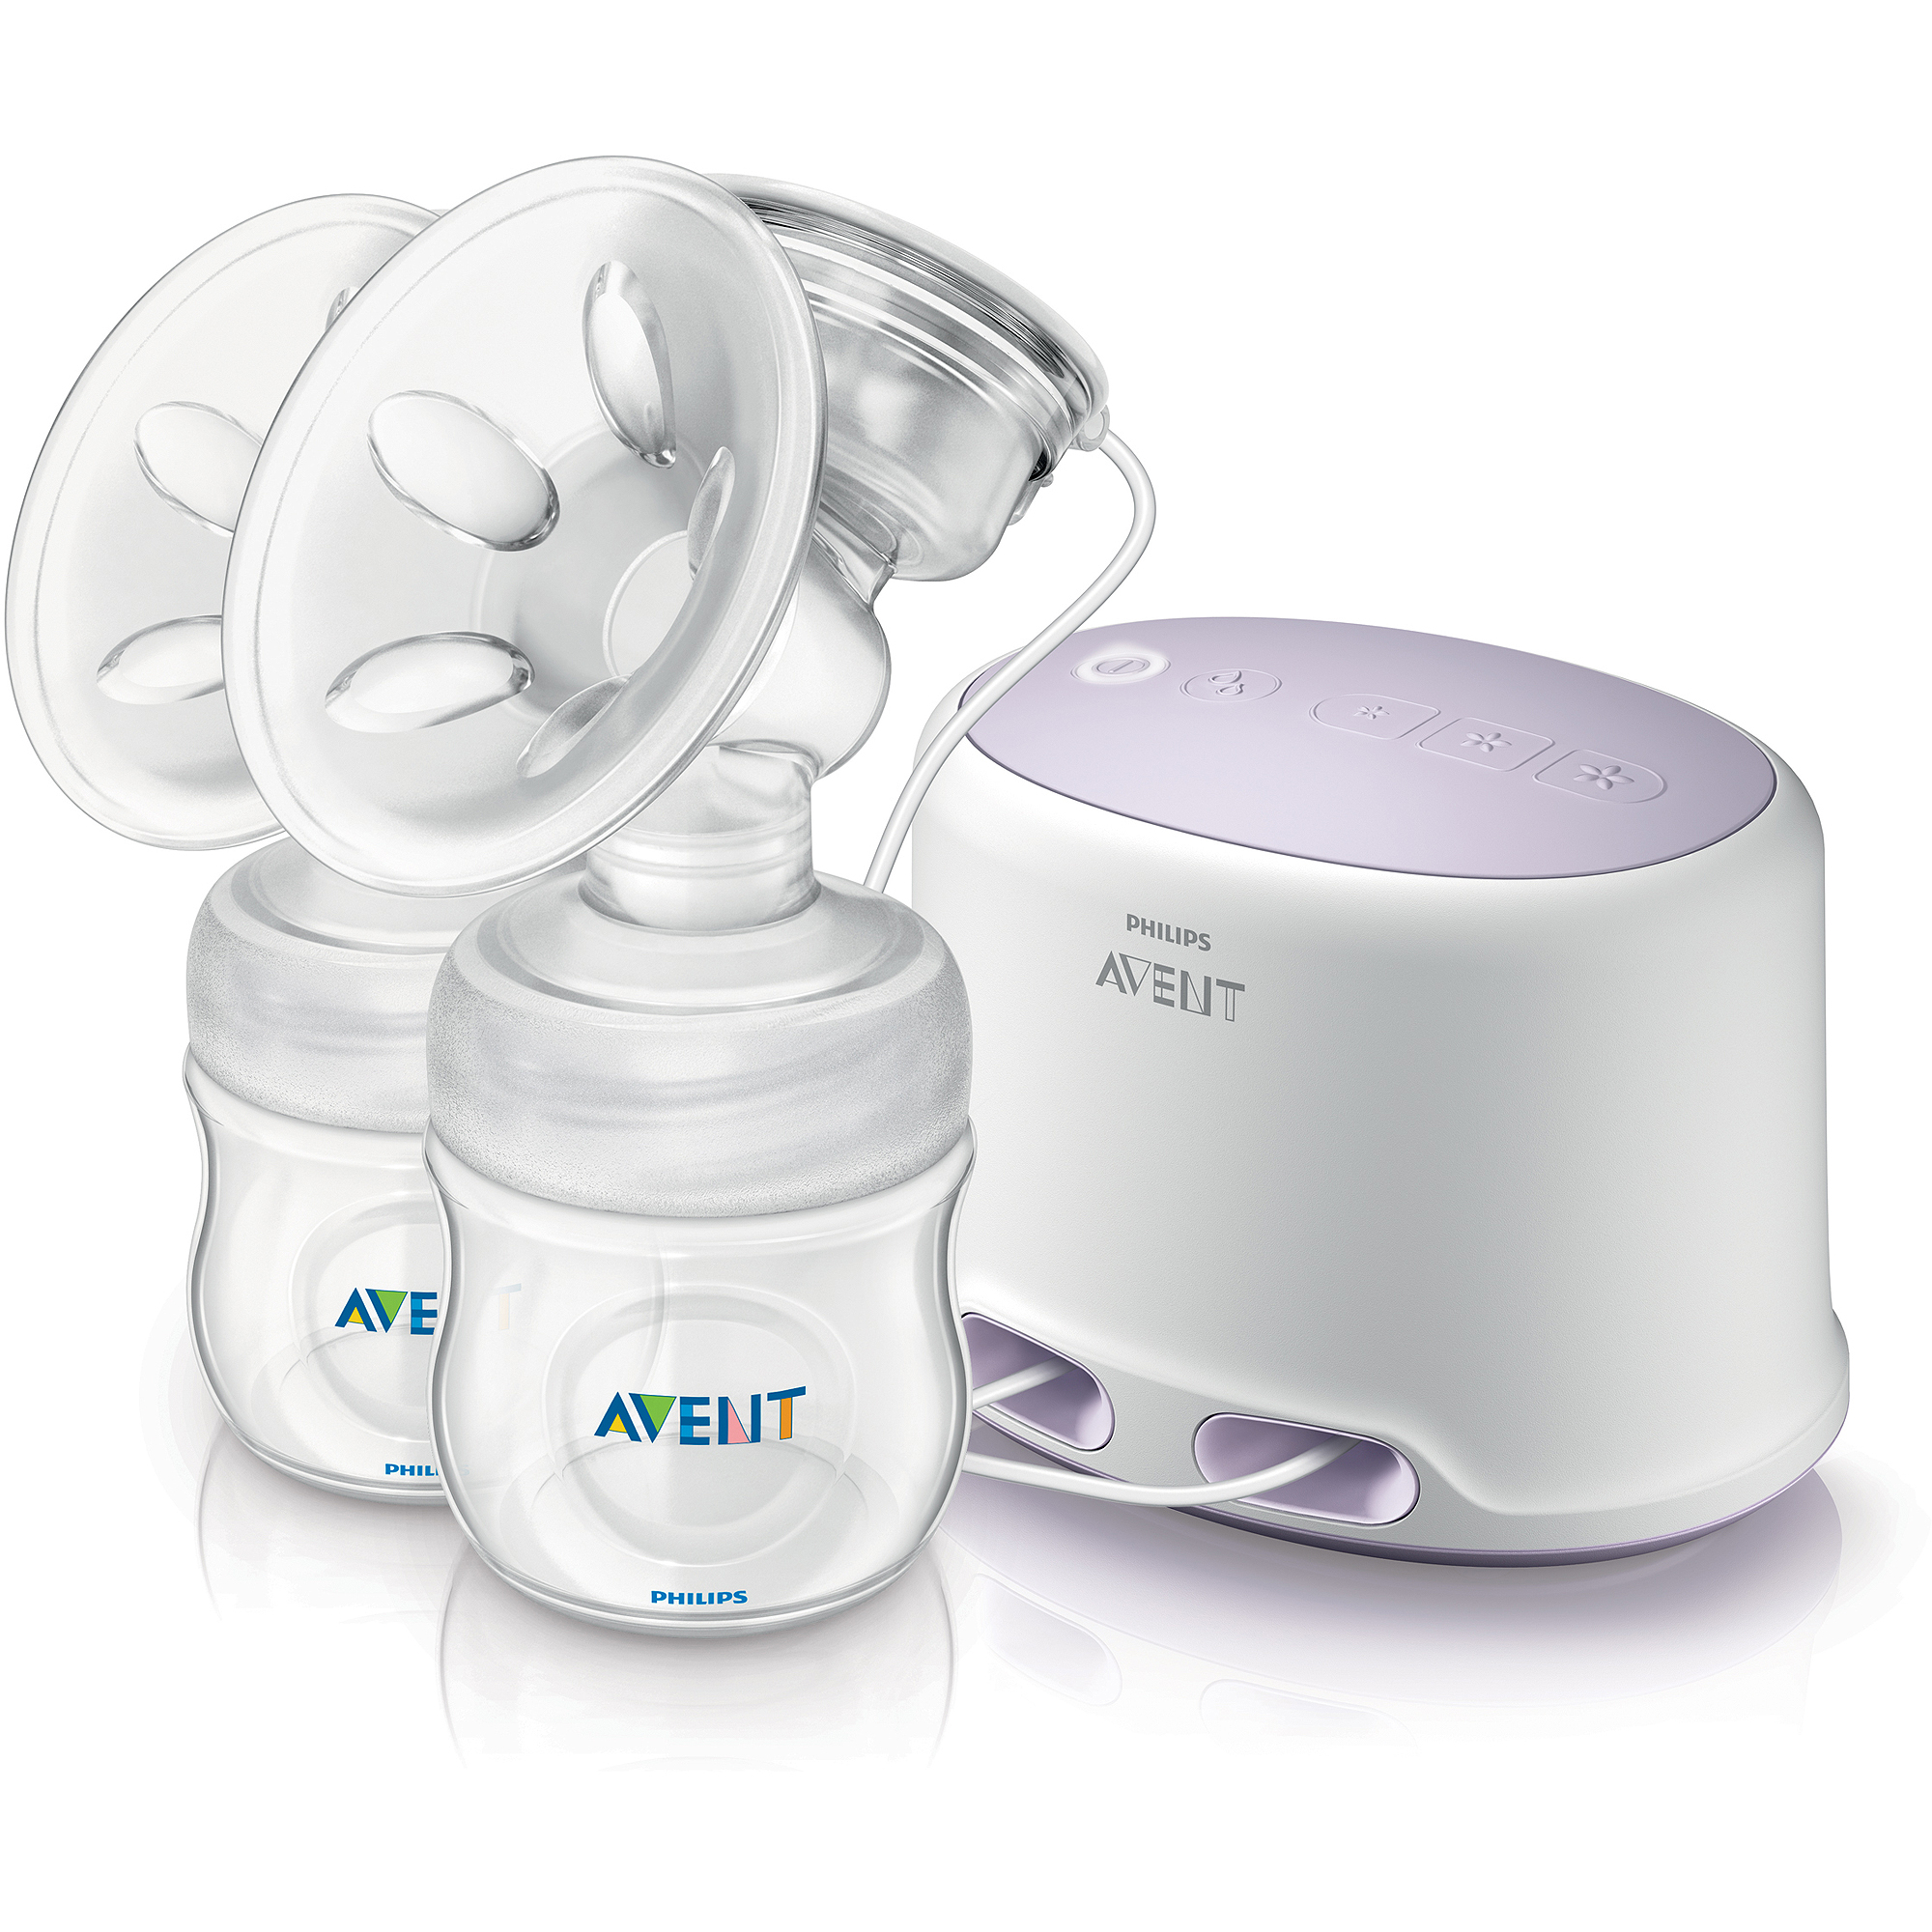 Philips avent double electric breast pump manual